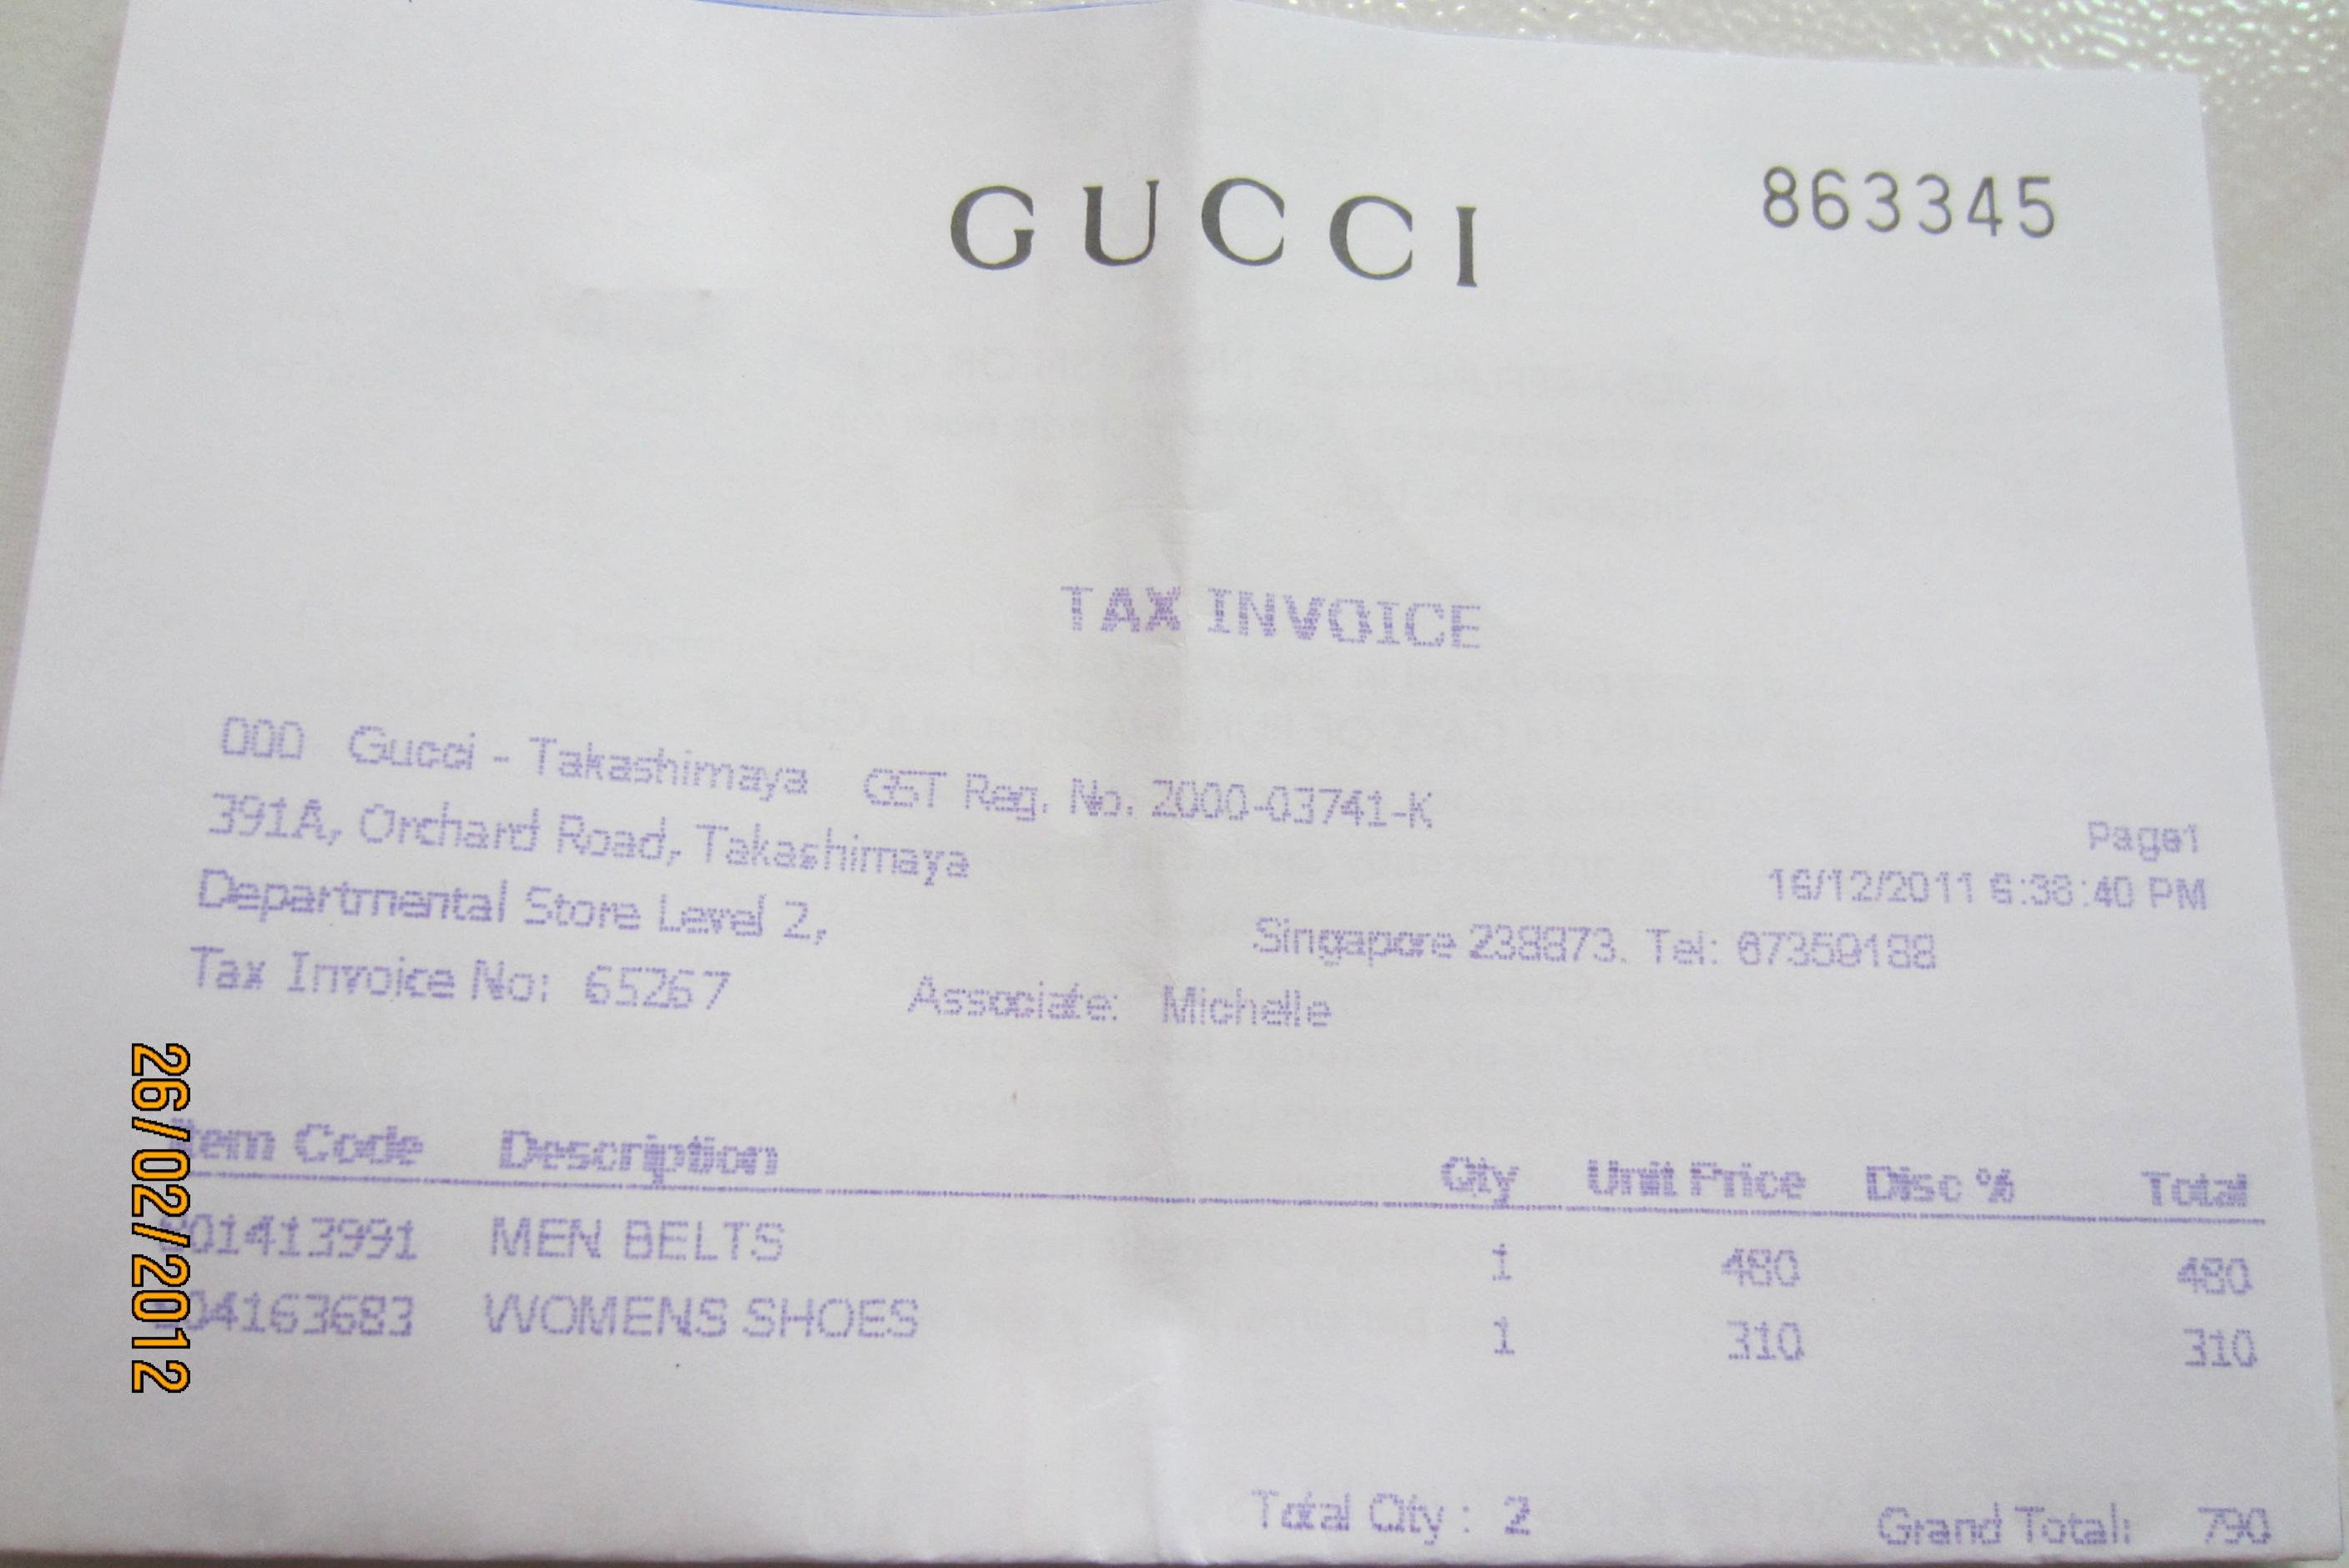 Louis Vuitton Receipt Template New Gucci Receipt Template